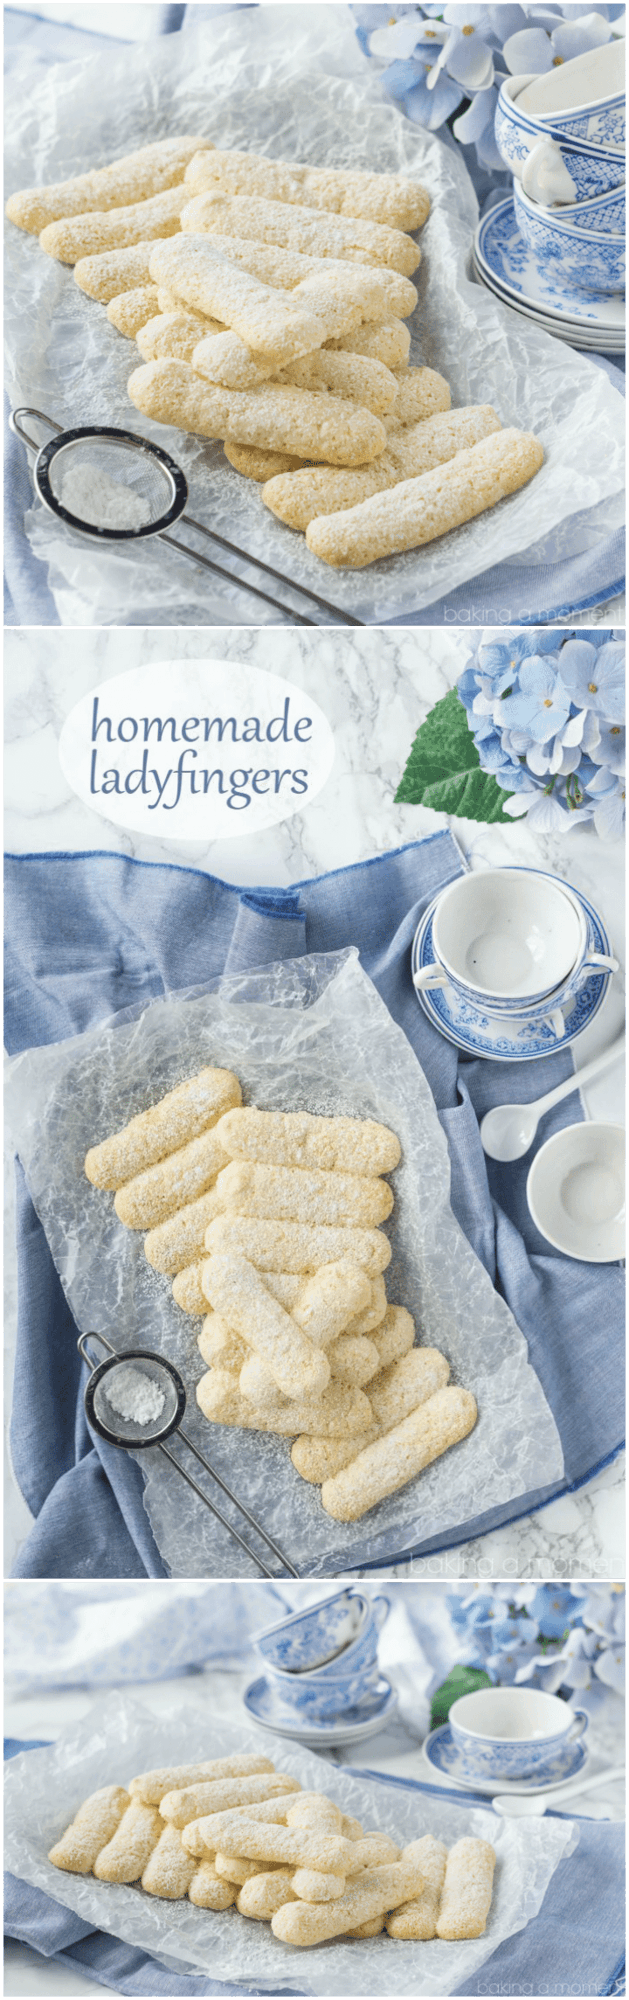 Homemade Ladyfingers- I've always wondered how to make these! Next time I make tiramisu I'll use this recipe ;)